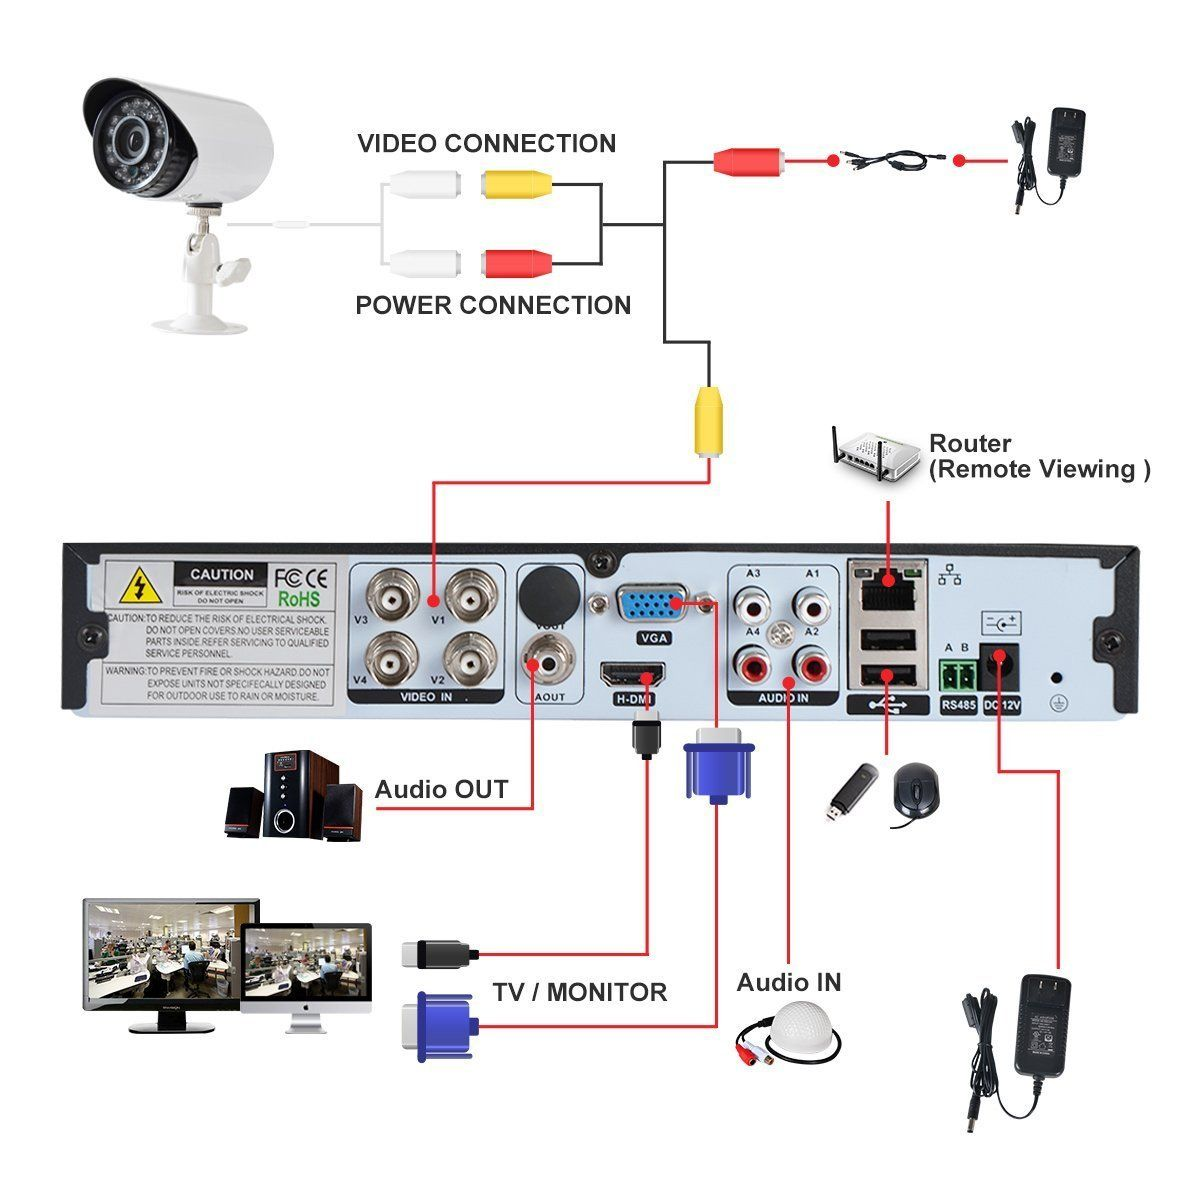 Diagram Of Cctv Installations Wiring For System 2005 Volvo Xc90 Wiring Diagram Bege Place Wiring Diagram